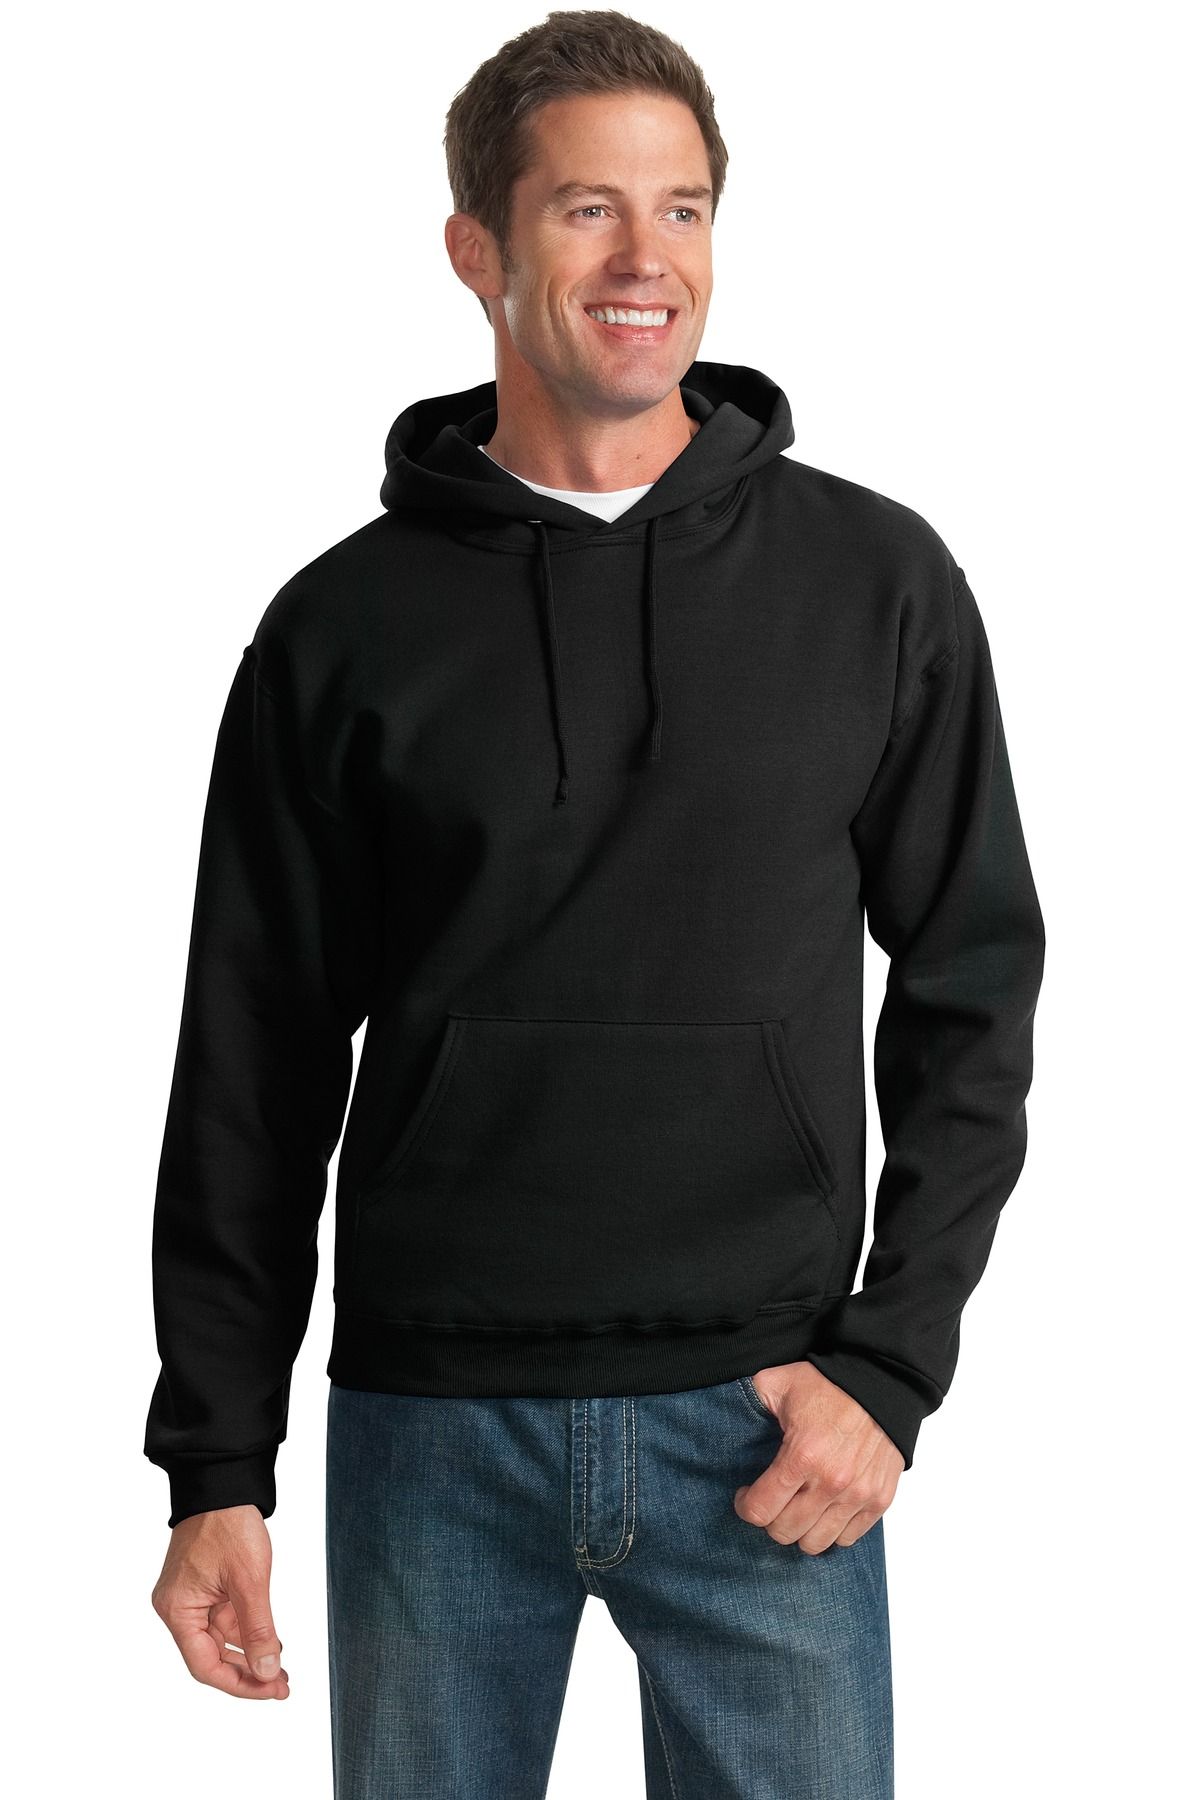 JERZEES ®  - NuBlend ®  Pullover Hooded Sweatshirt.  996M - Black